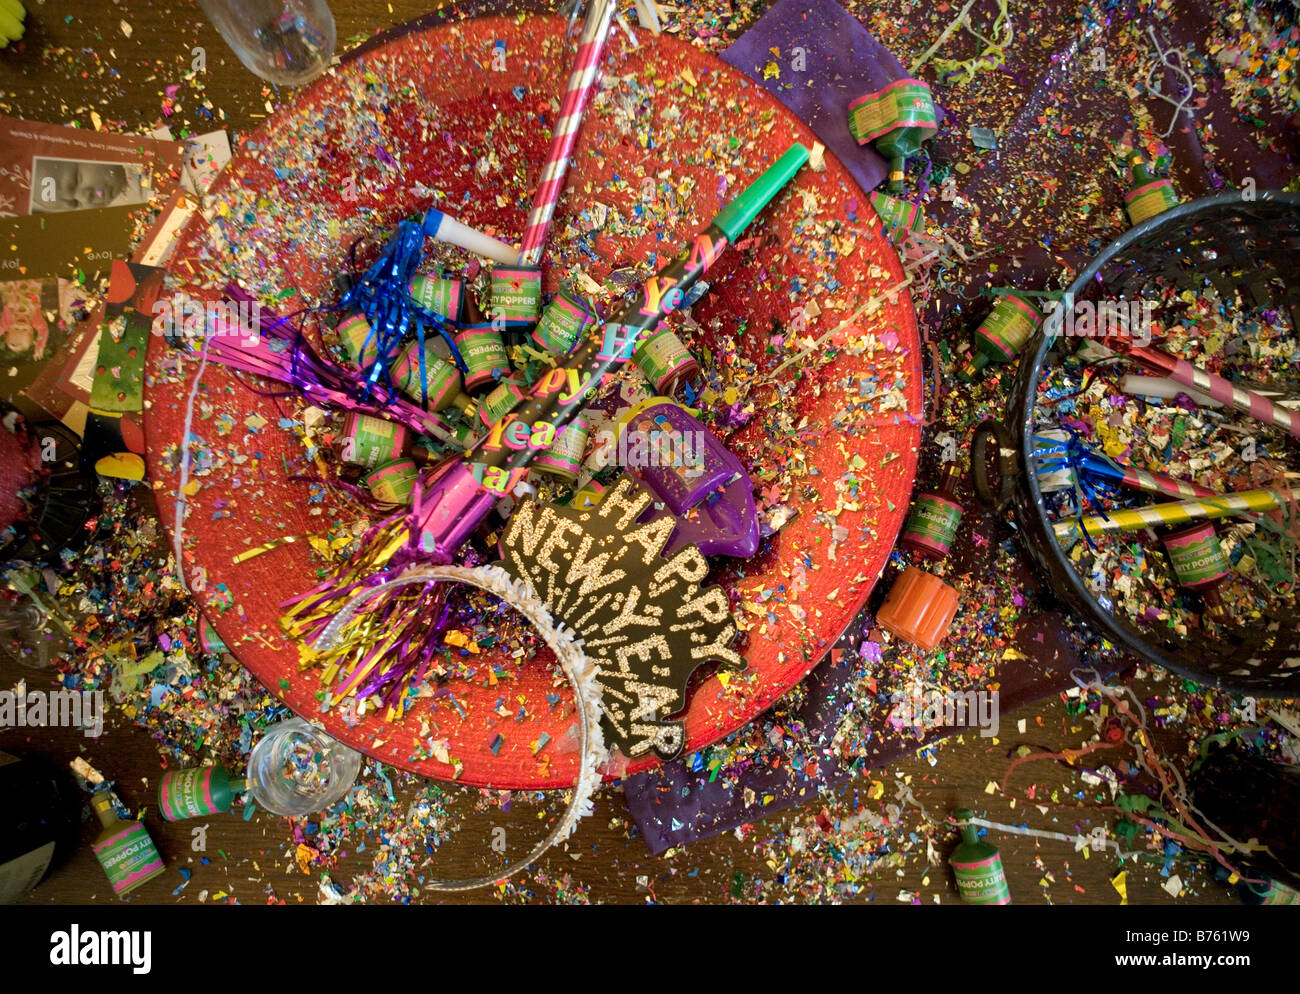 New Years Eve Party Wreckage including confetti poppers horns streamers noise makers champagne glasses and hats - Stock Image